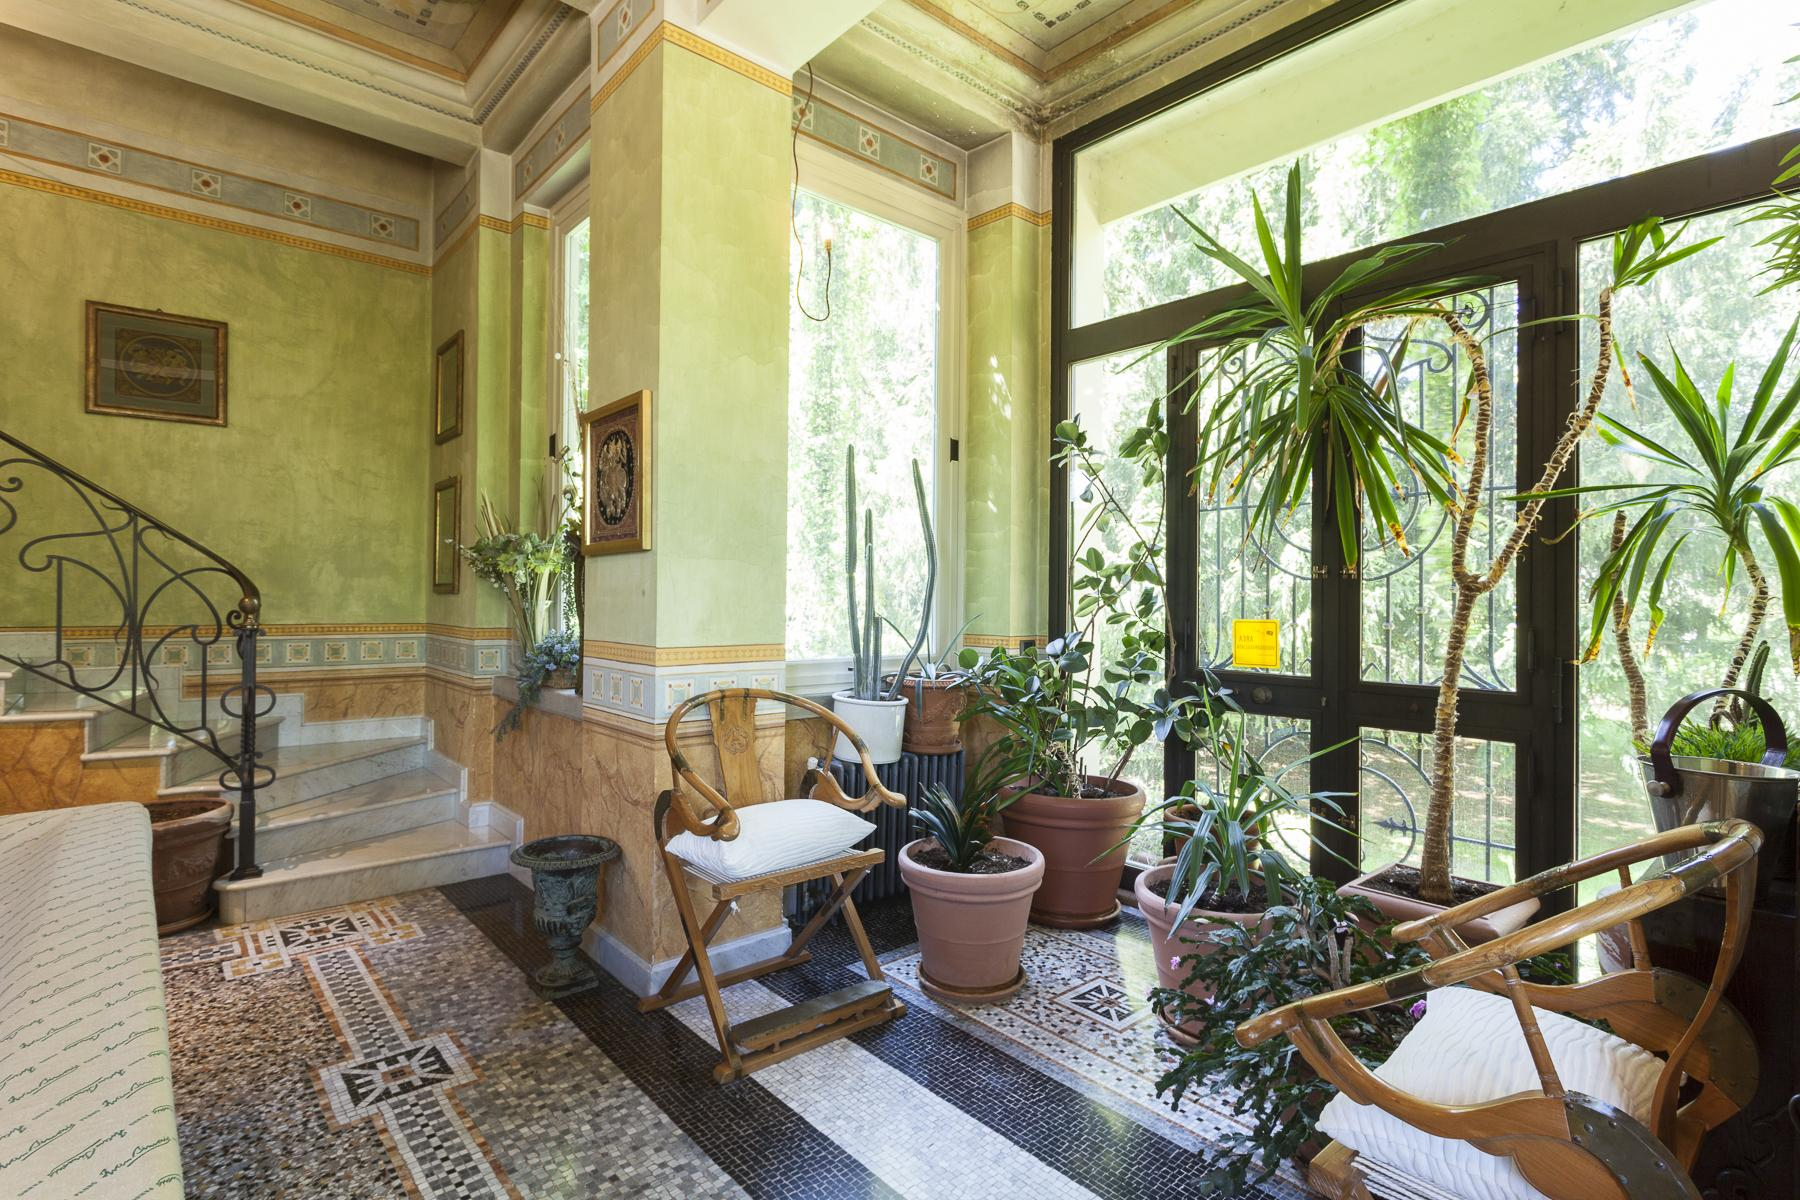 Elegant Art Nouveau villa with private park - 16